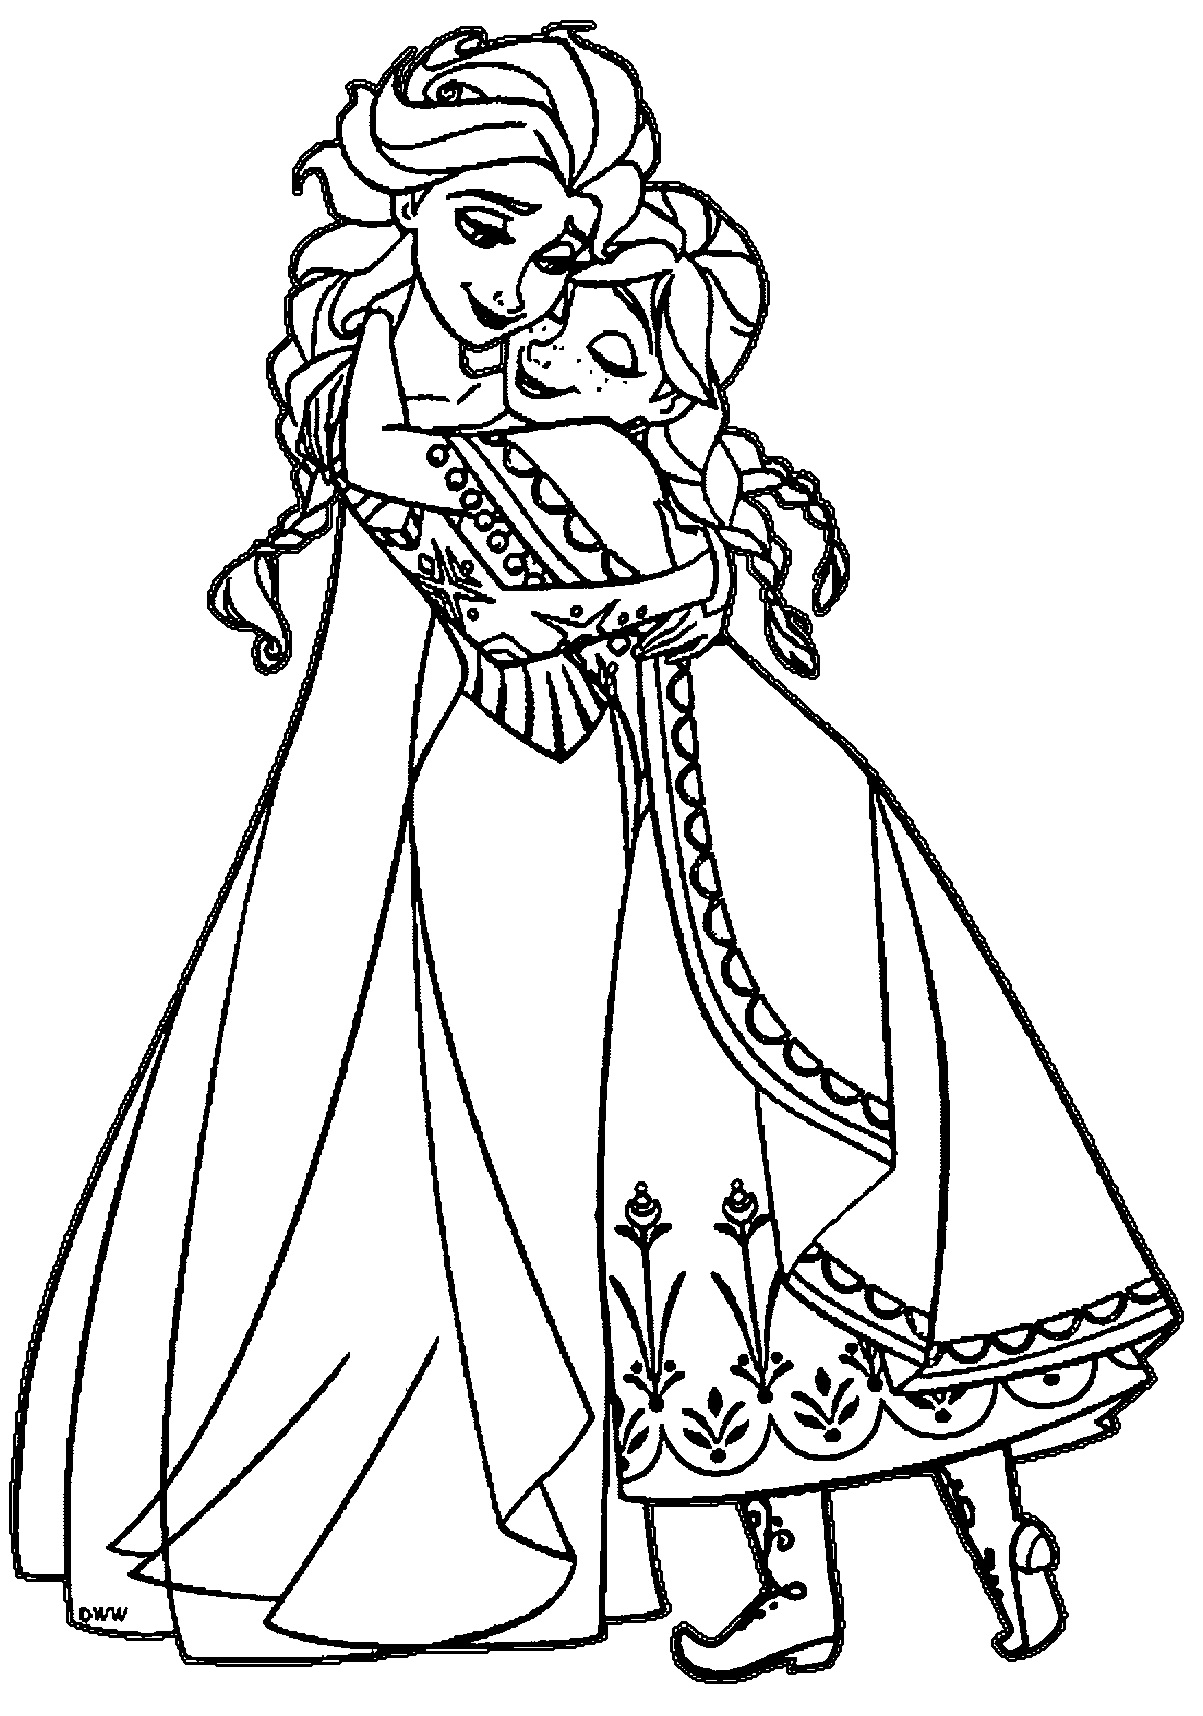 coloring sheets elsa and anna mewarnai putri elsa gambar mewarnai hd and coloring sheets anna elsa